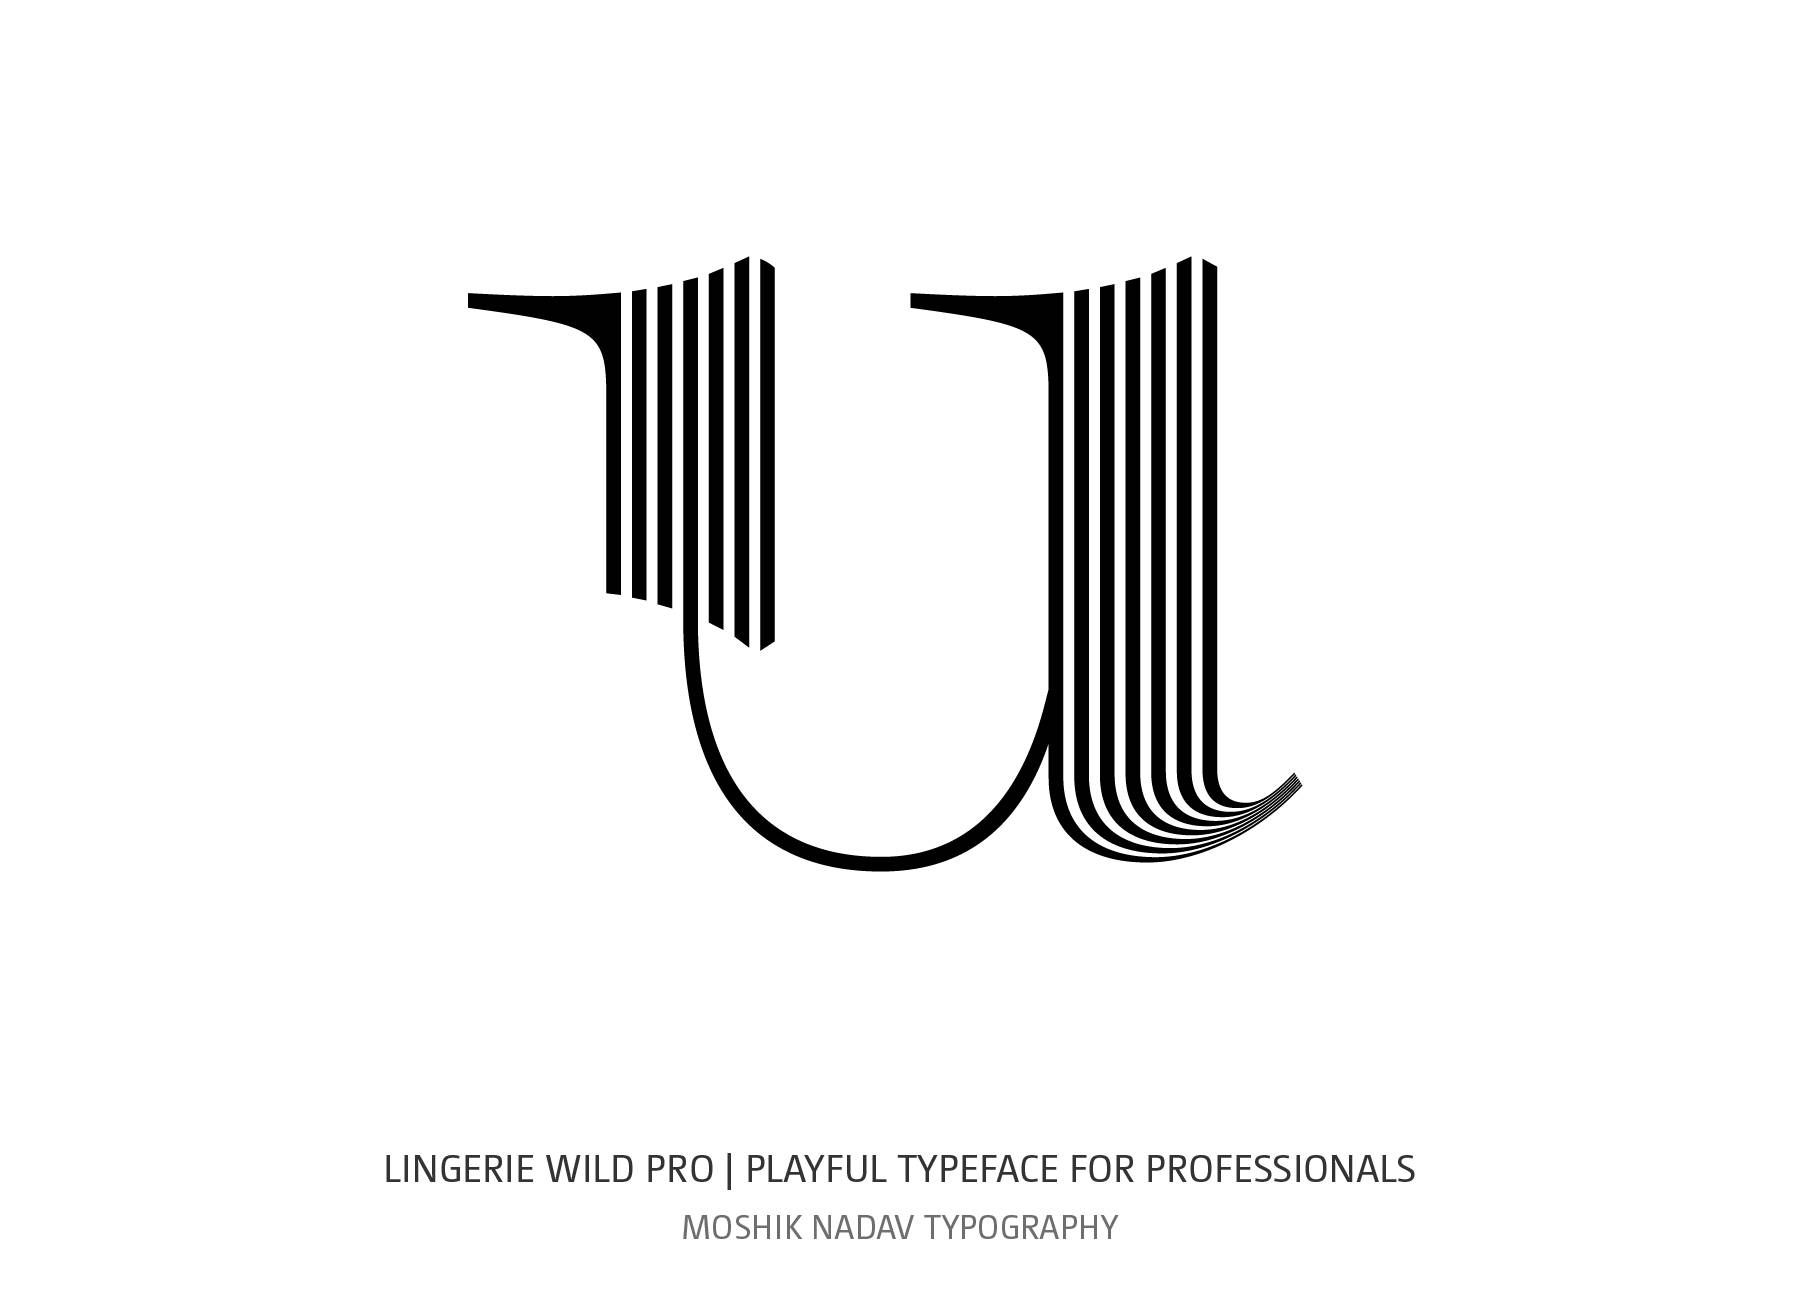 Lingerie Wild Pro Typeface lowercase u designed to create beauty logos